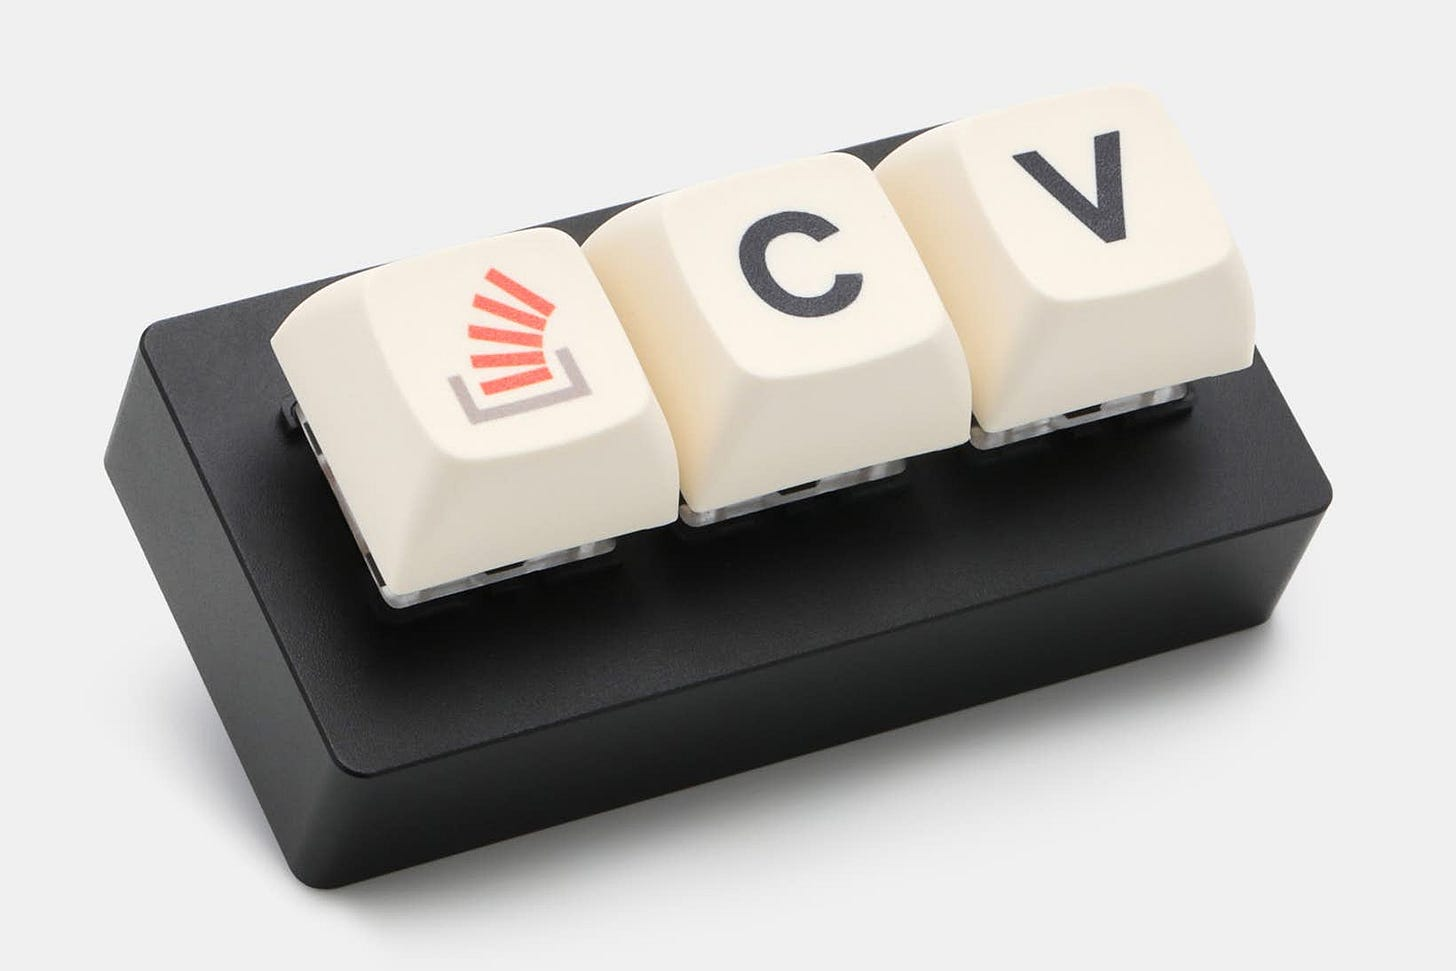 https://massdrop-s3.imgix.net/product-images/stack-overflow-the-key-macropad/FP/jVRhRp6oQoGOSx6dovN5_2607.jpg?auto=format&fm=jpg&fit=fill&w=820&h=547&bg=f0f0f0&dpr=2&q=35